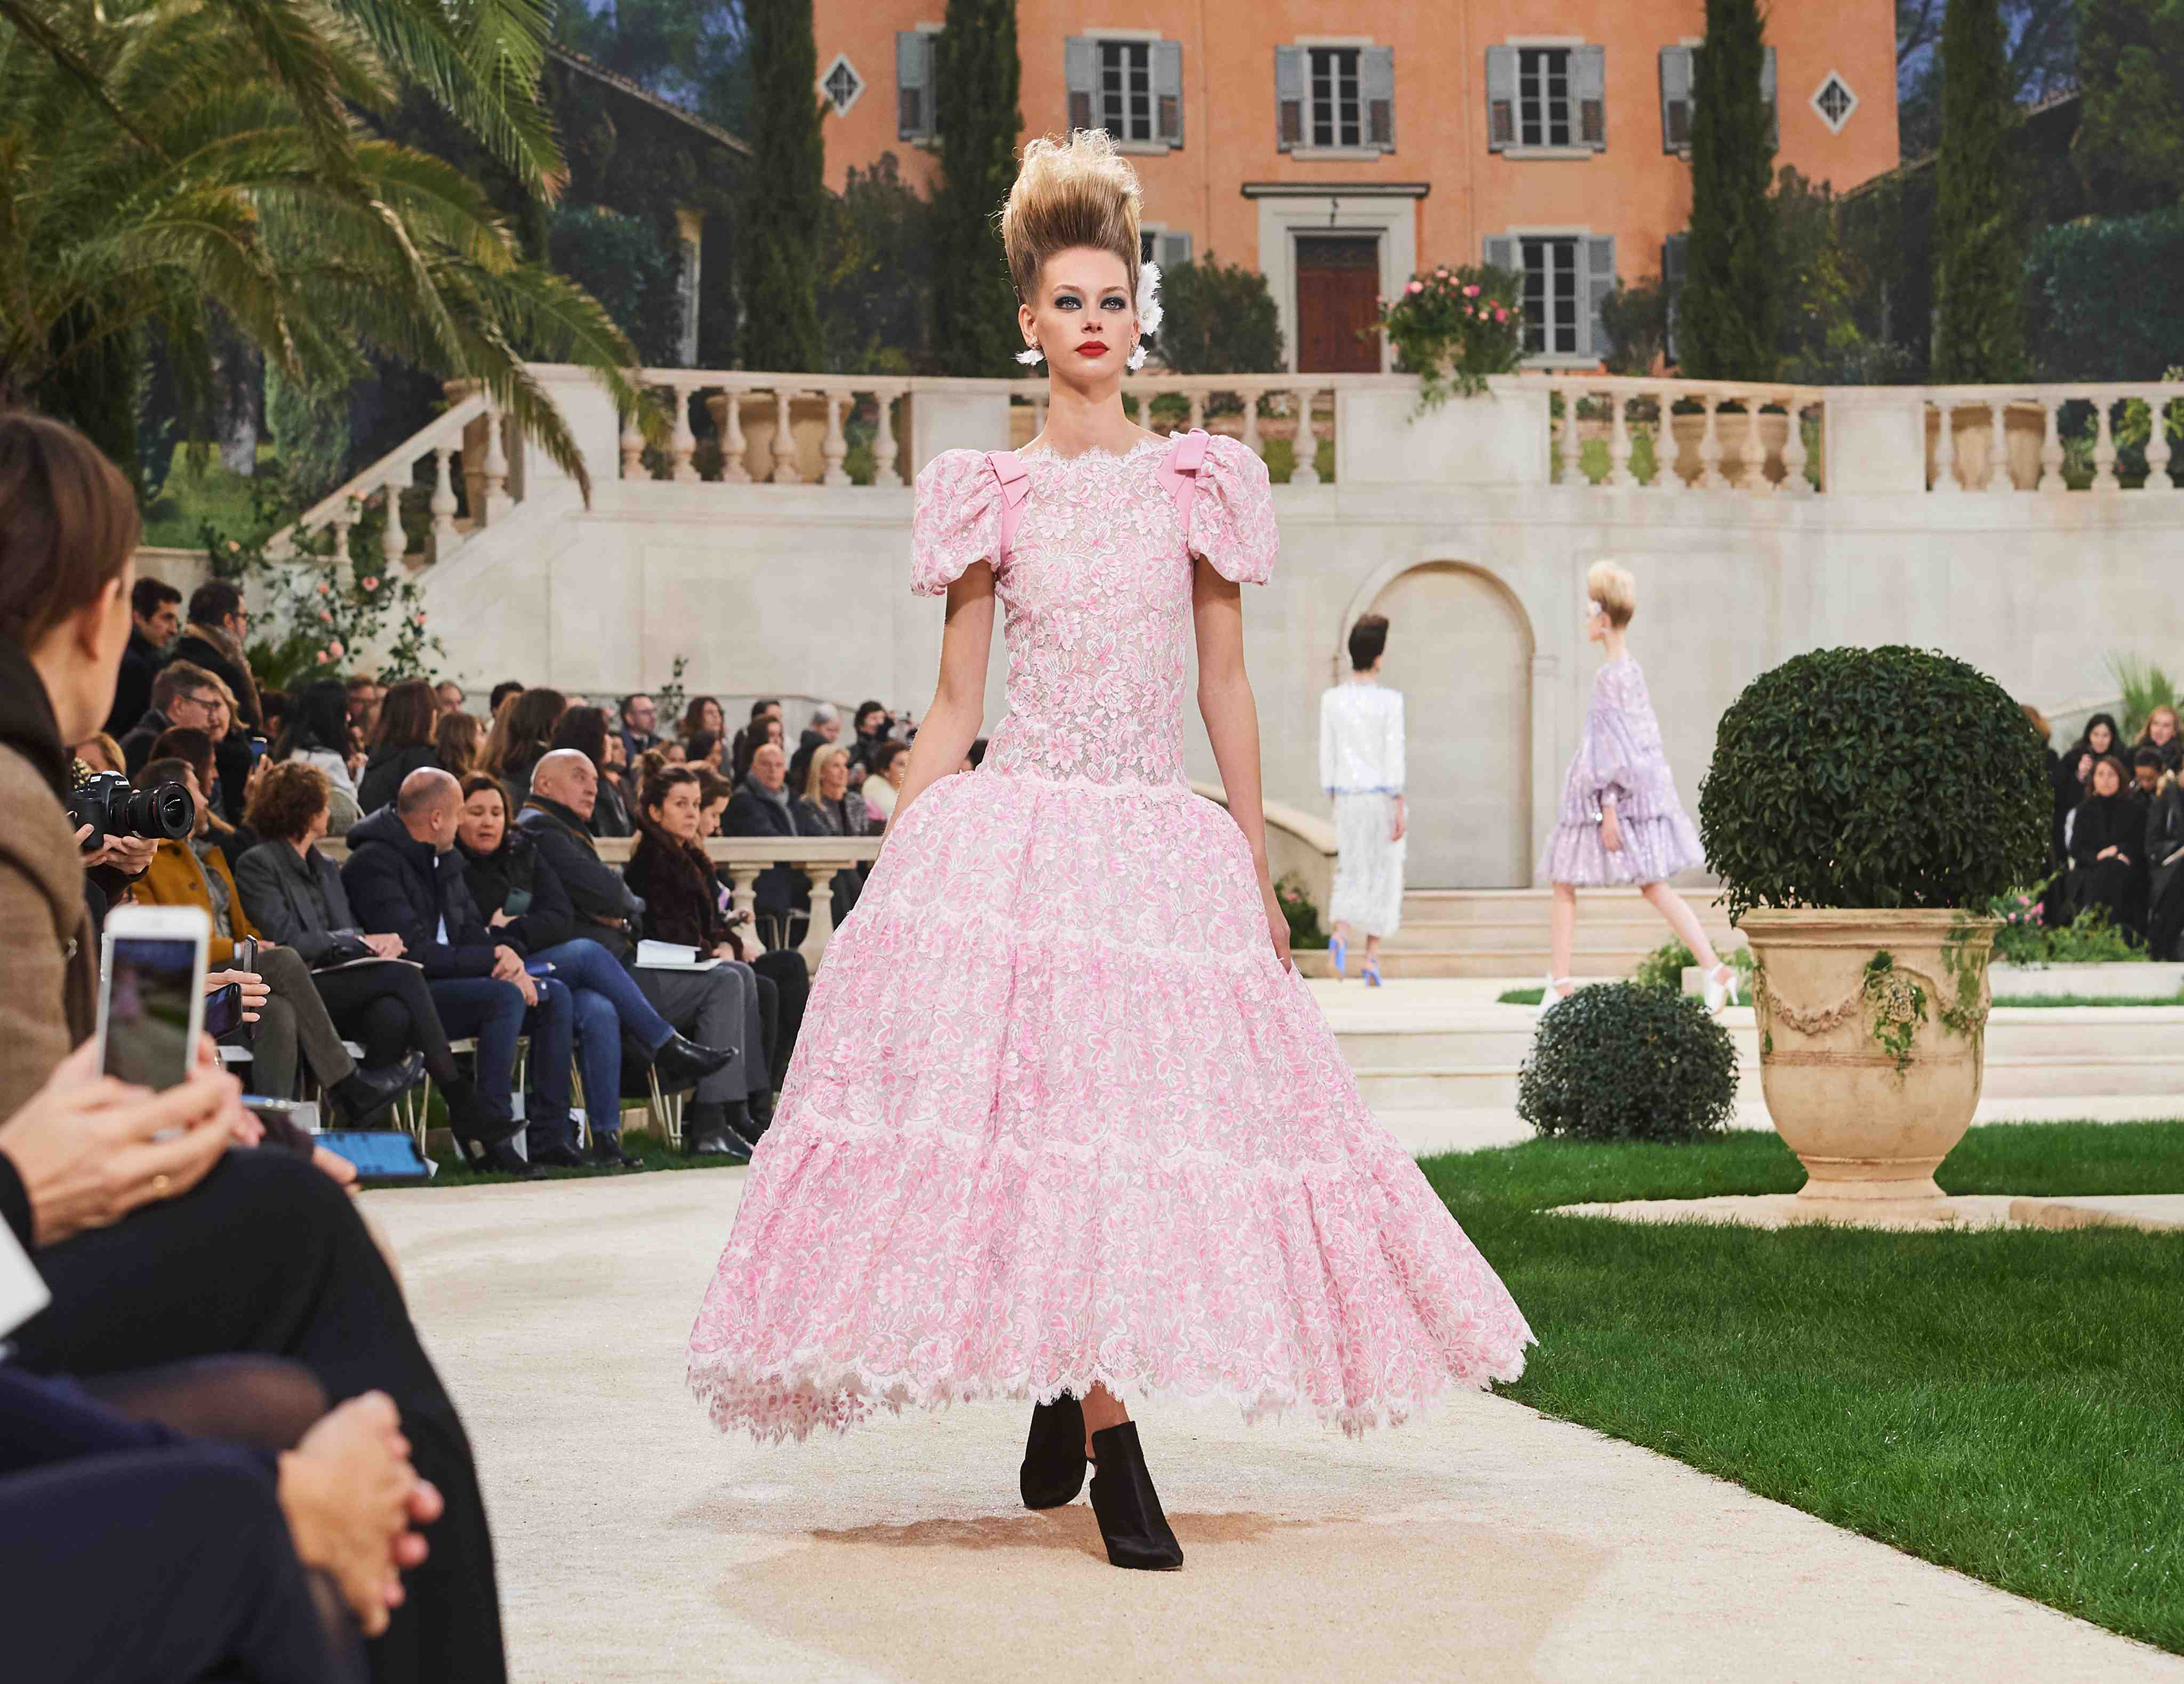 Chanel SS19 Haute Couture pink gown with ruffles